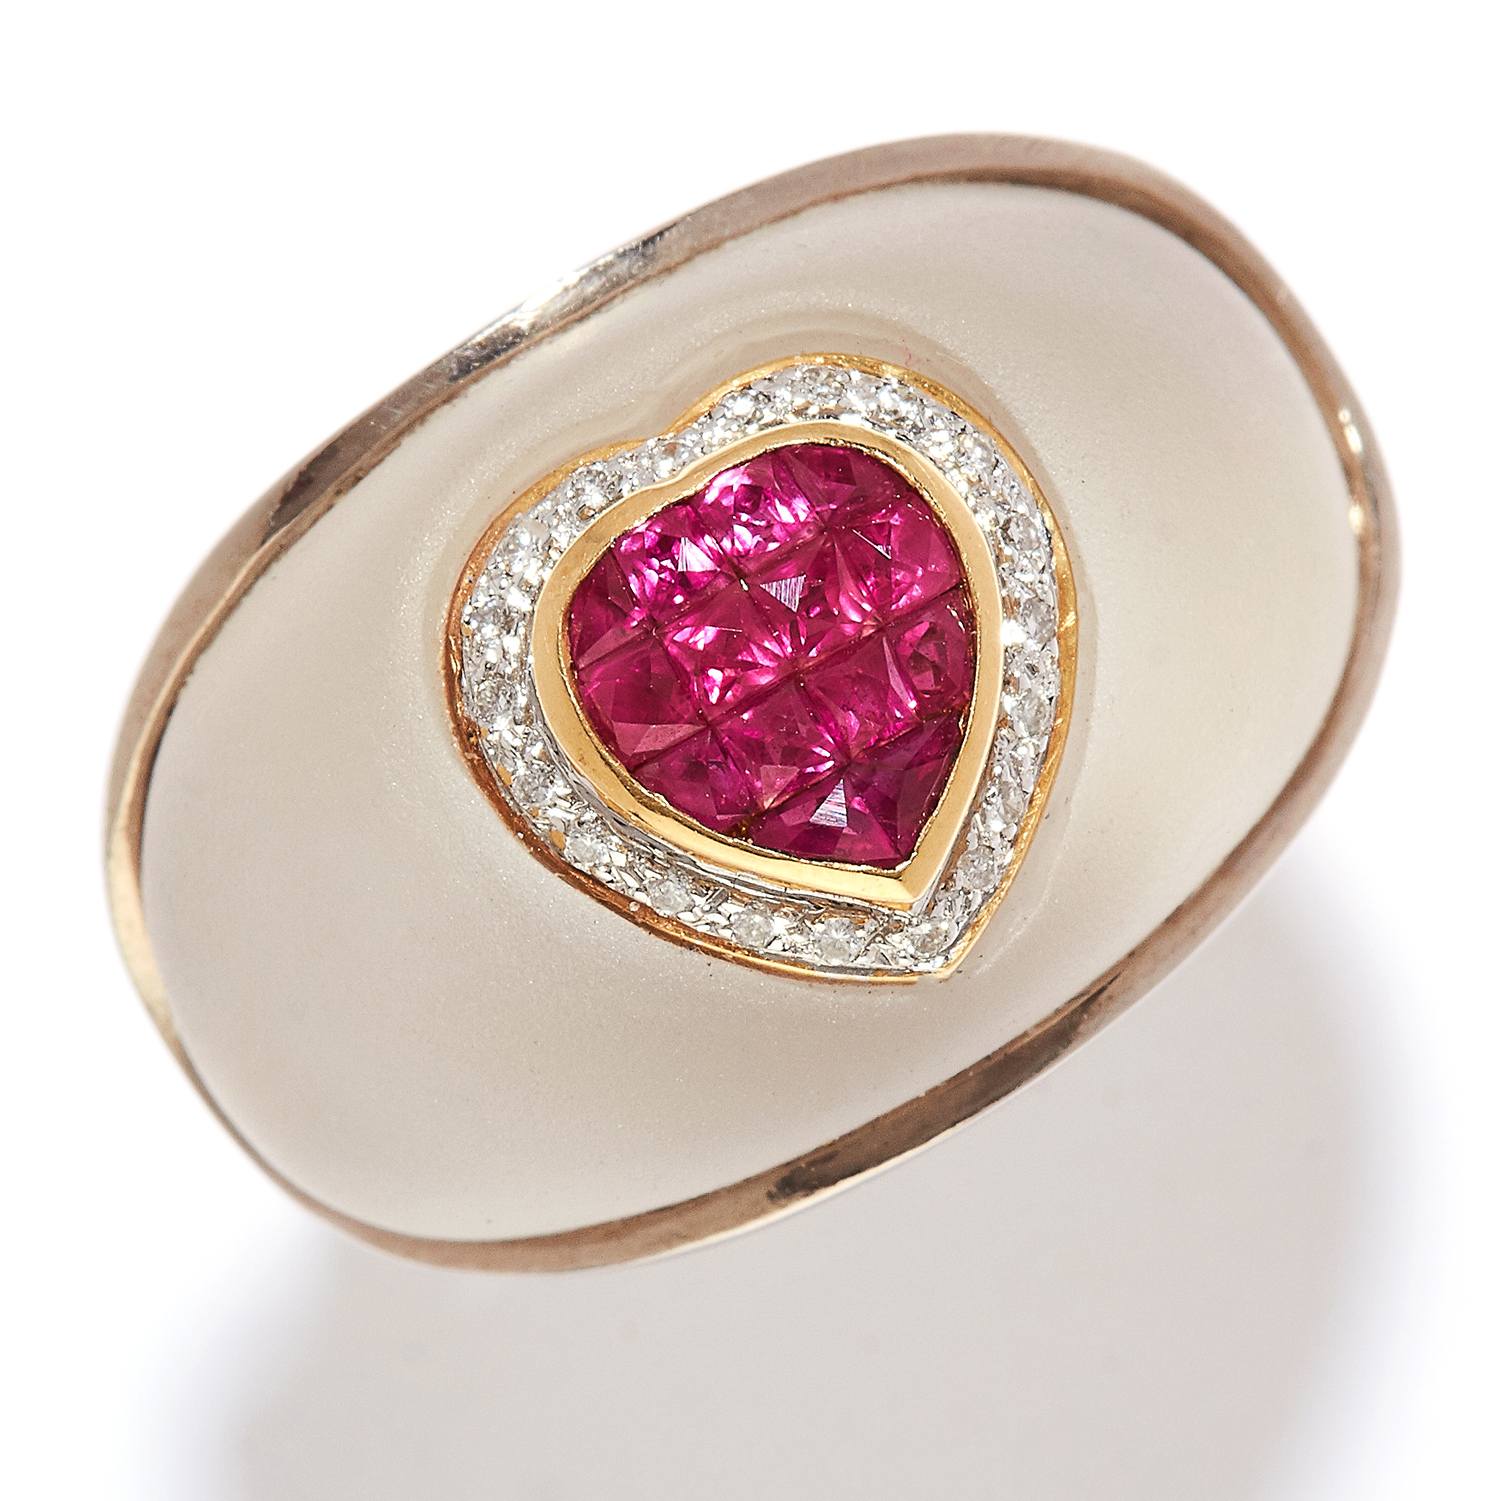 RUBY, DIAMOND AND ROCK CRYSTAL RING in 18ct yellow and white gold, bombe design, the rock crystal